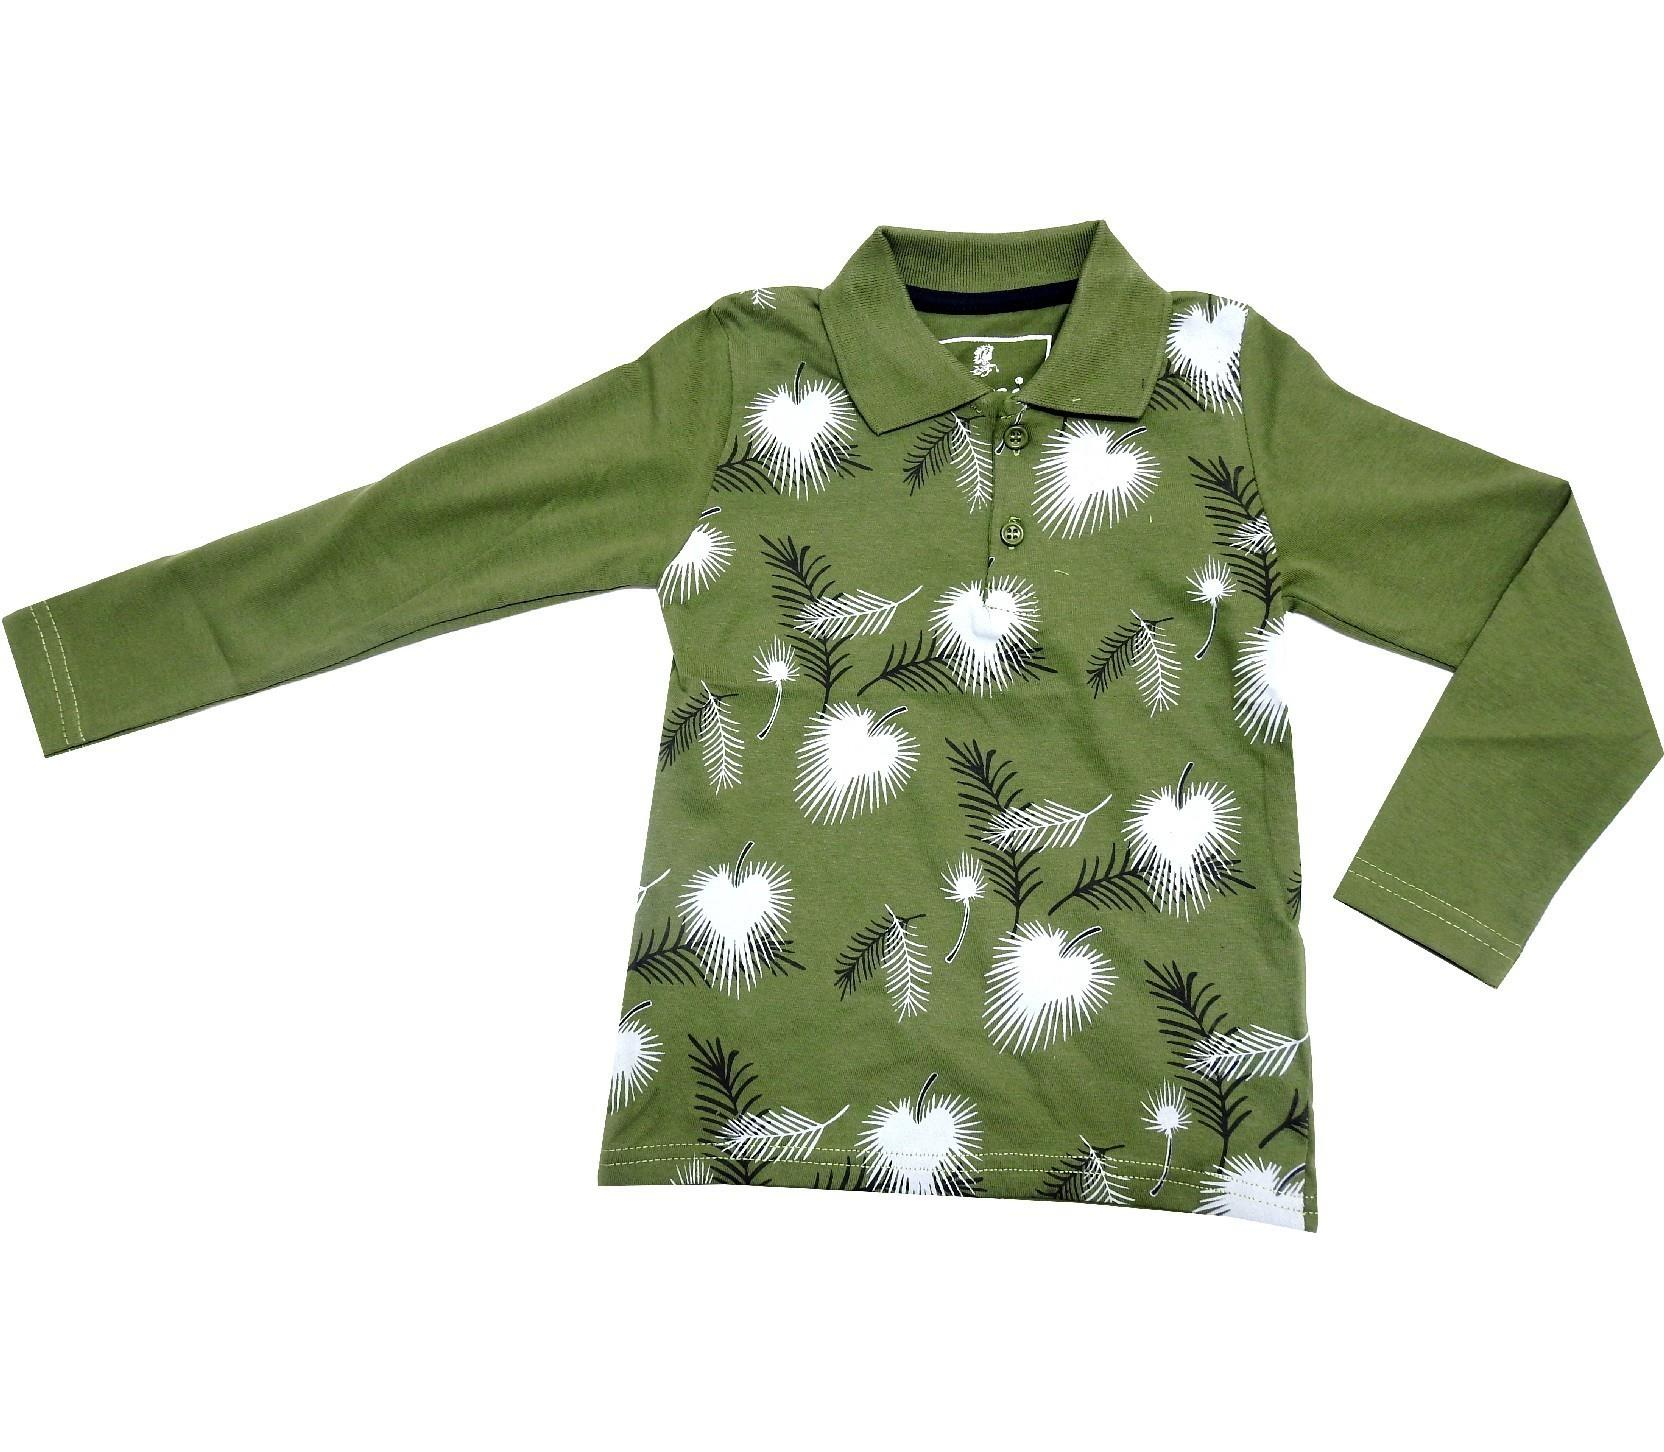 WHOLESALE LEAF AND FEATHER EMBROIDERED DESIGN T-SHIRT POLO FOR BOY (9-10-11-12 AGE)